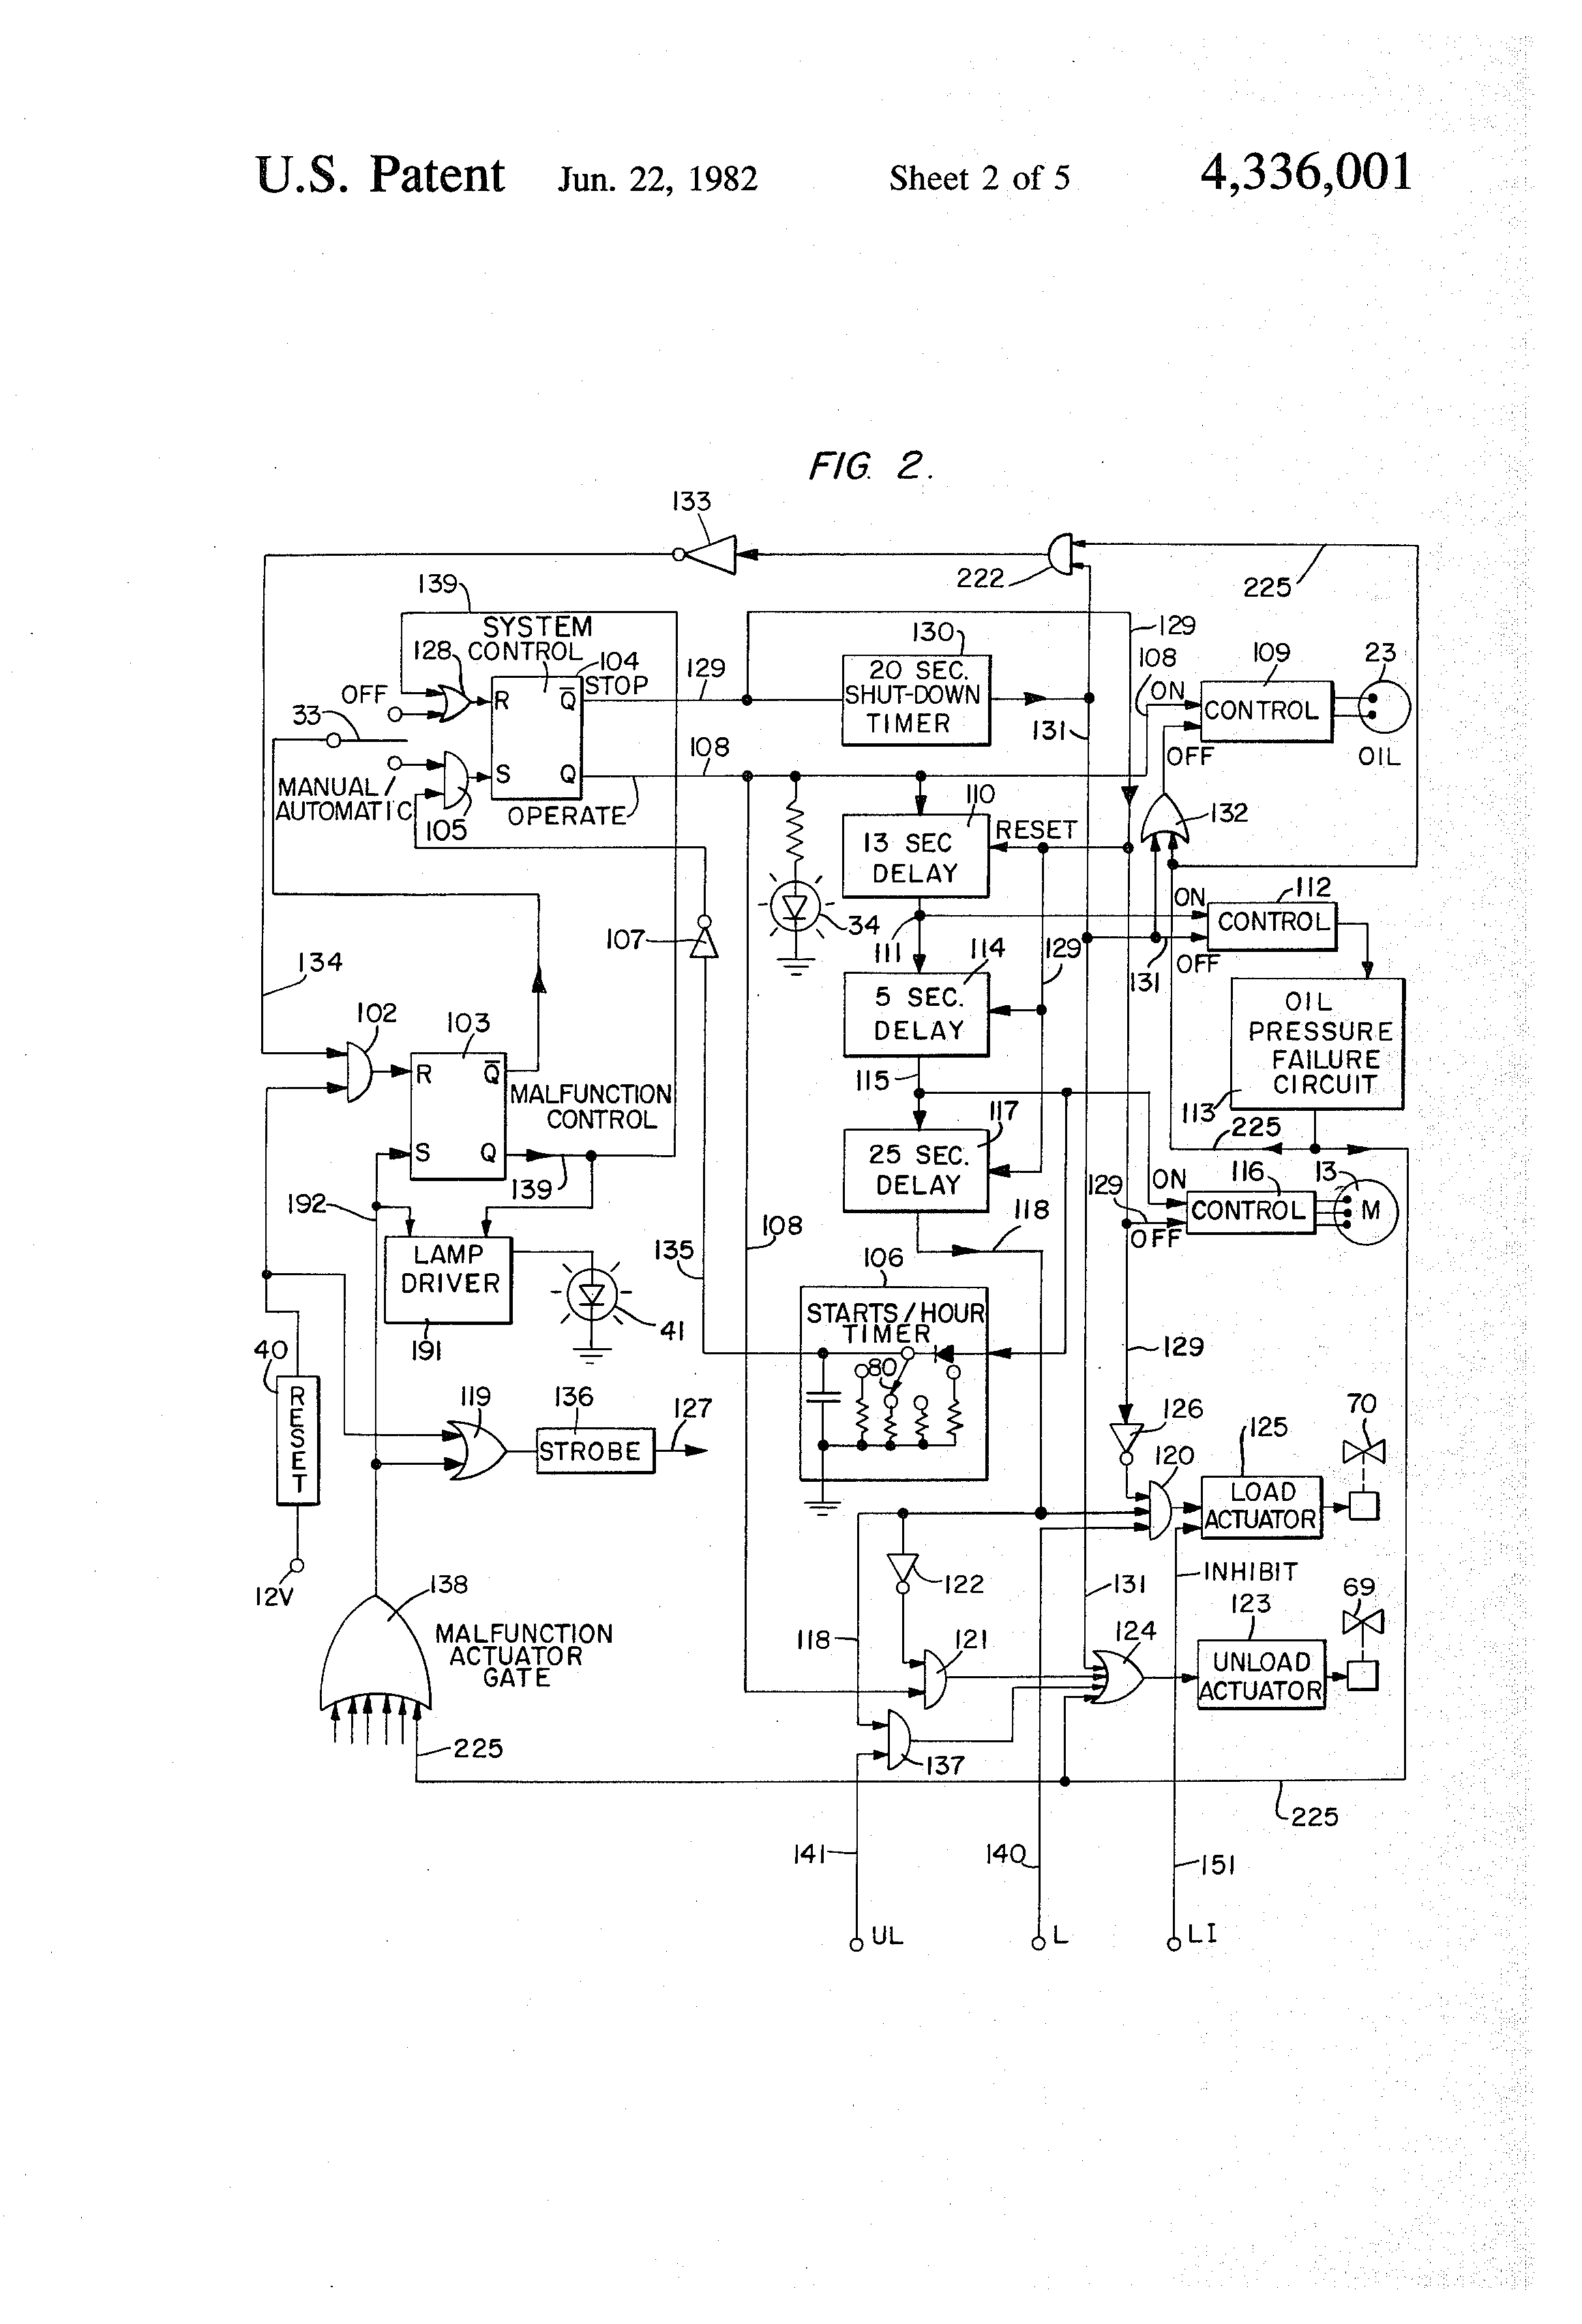 US4336001 2 patent us4336001 solid state compressor control system google atlas copco 185 compressor wiring diagram at n-0.co